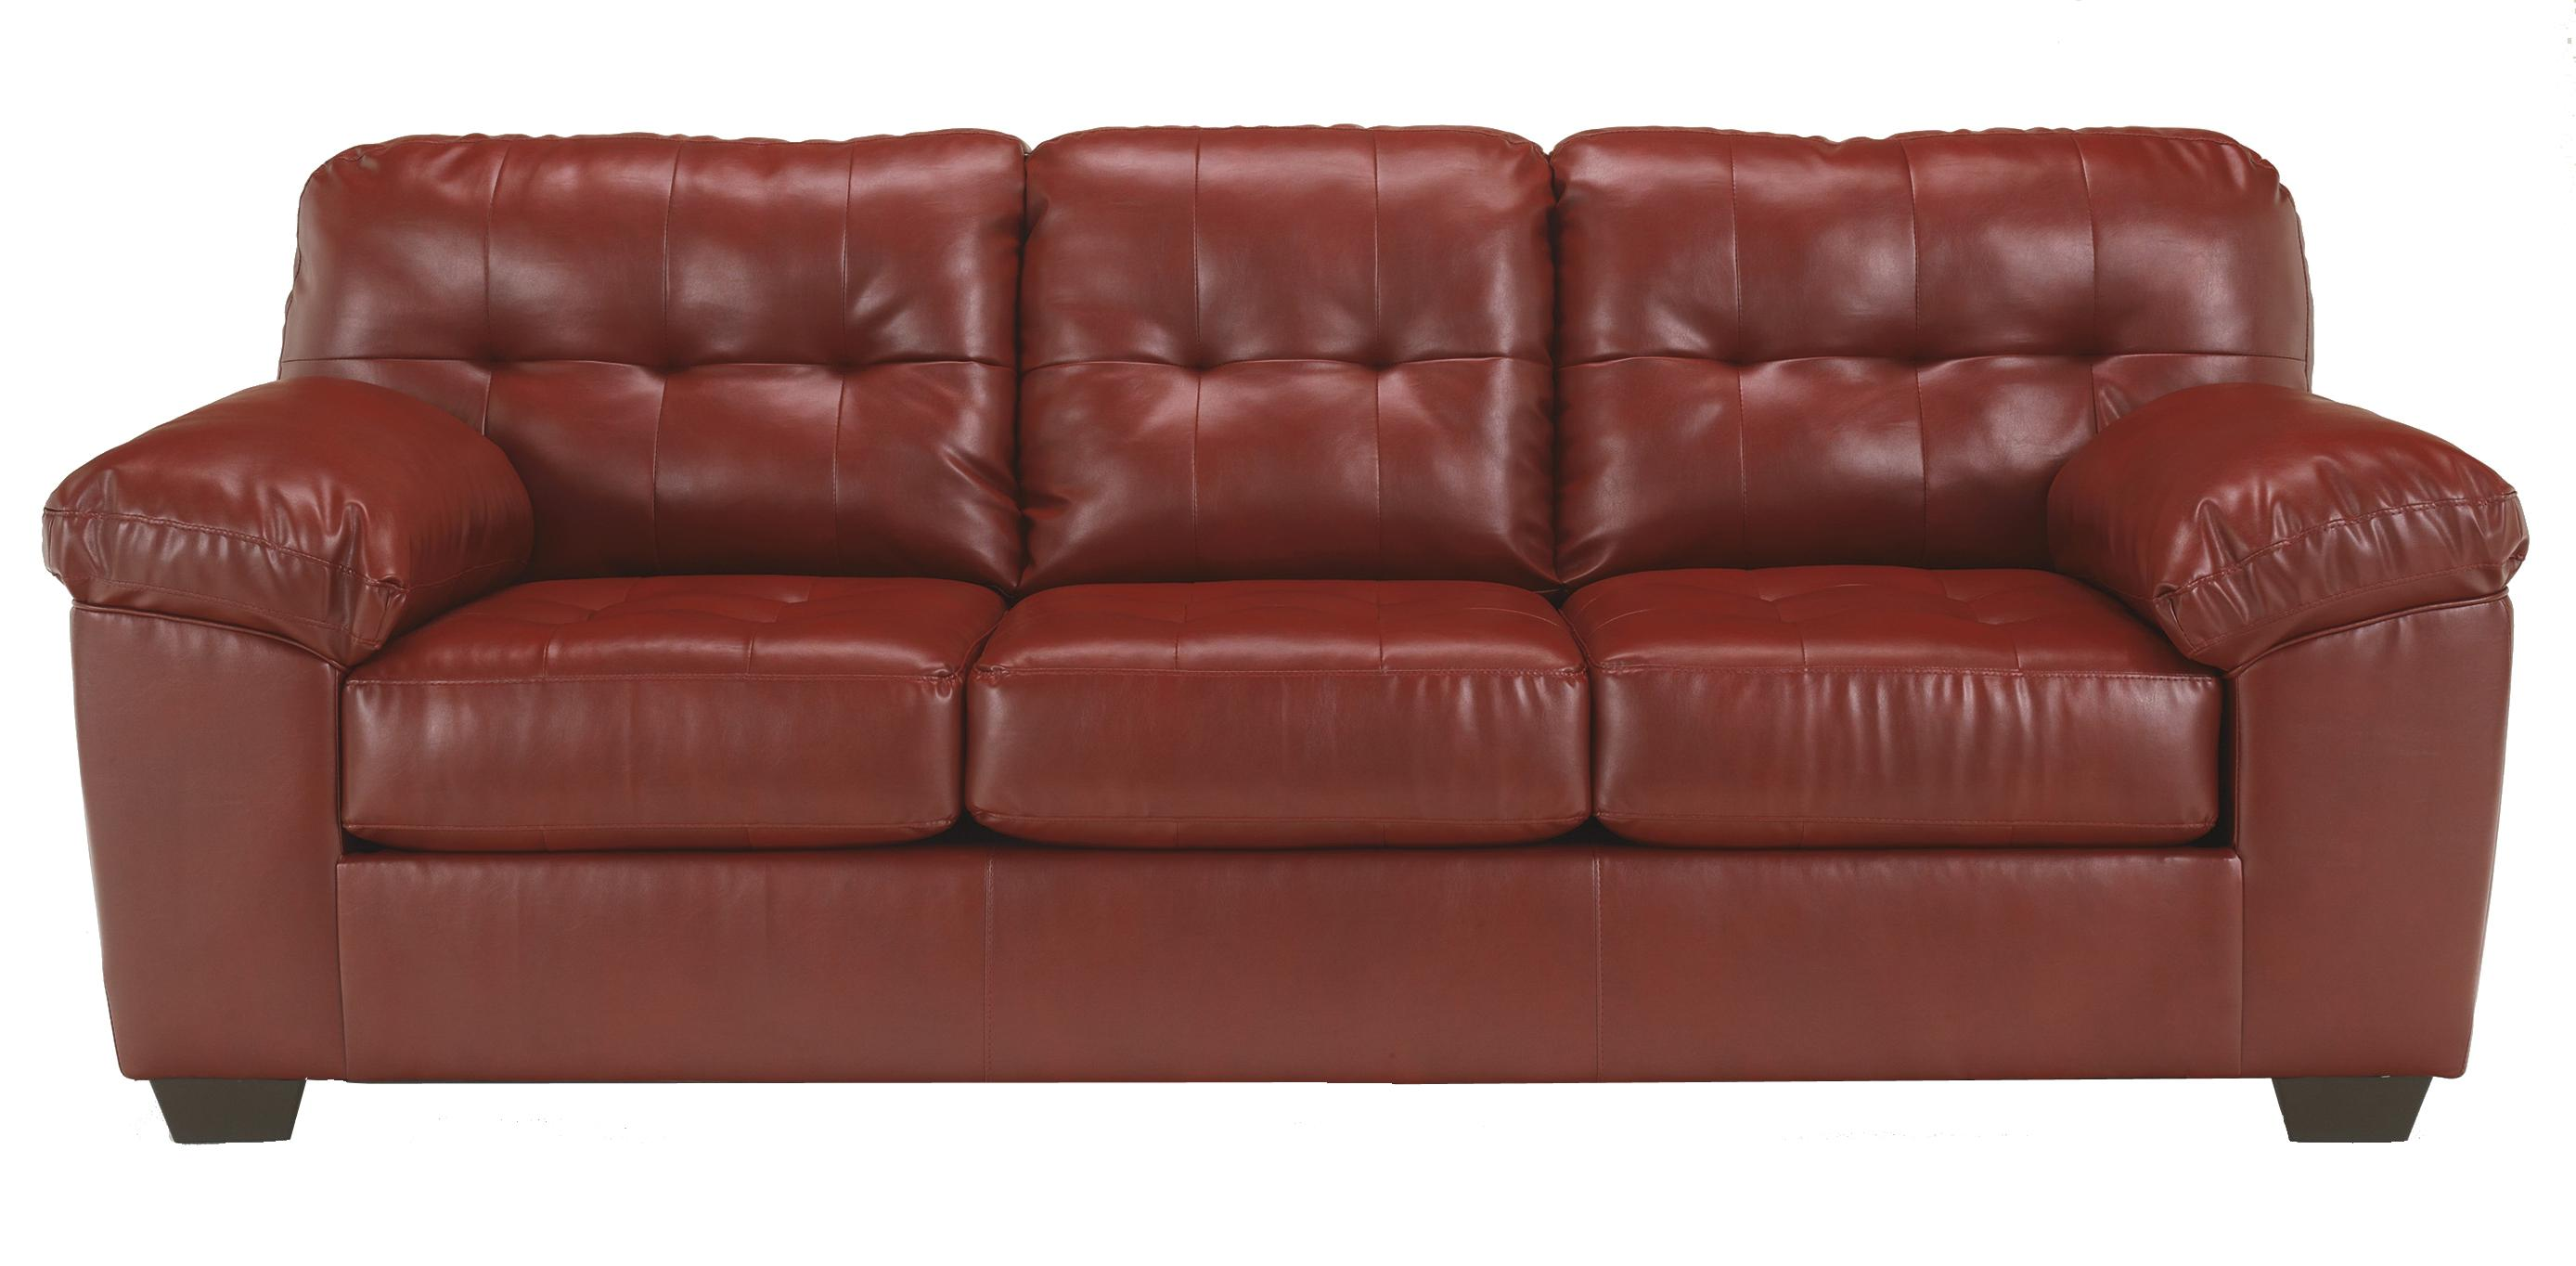 Signature Design by Ashley Alliston DuraBlend® - Salsa Sofa - Item Number: 2010038